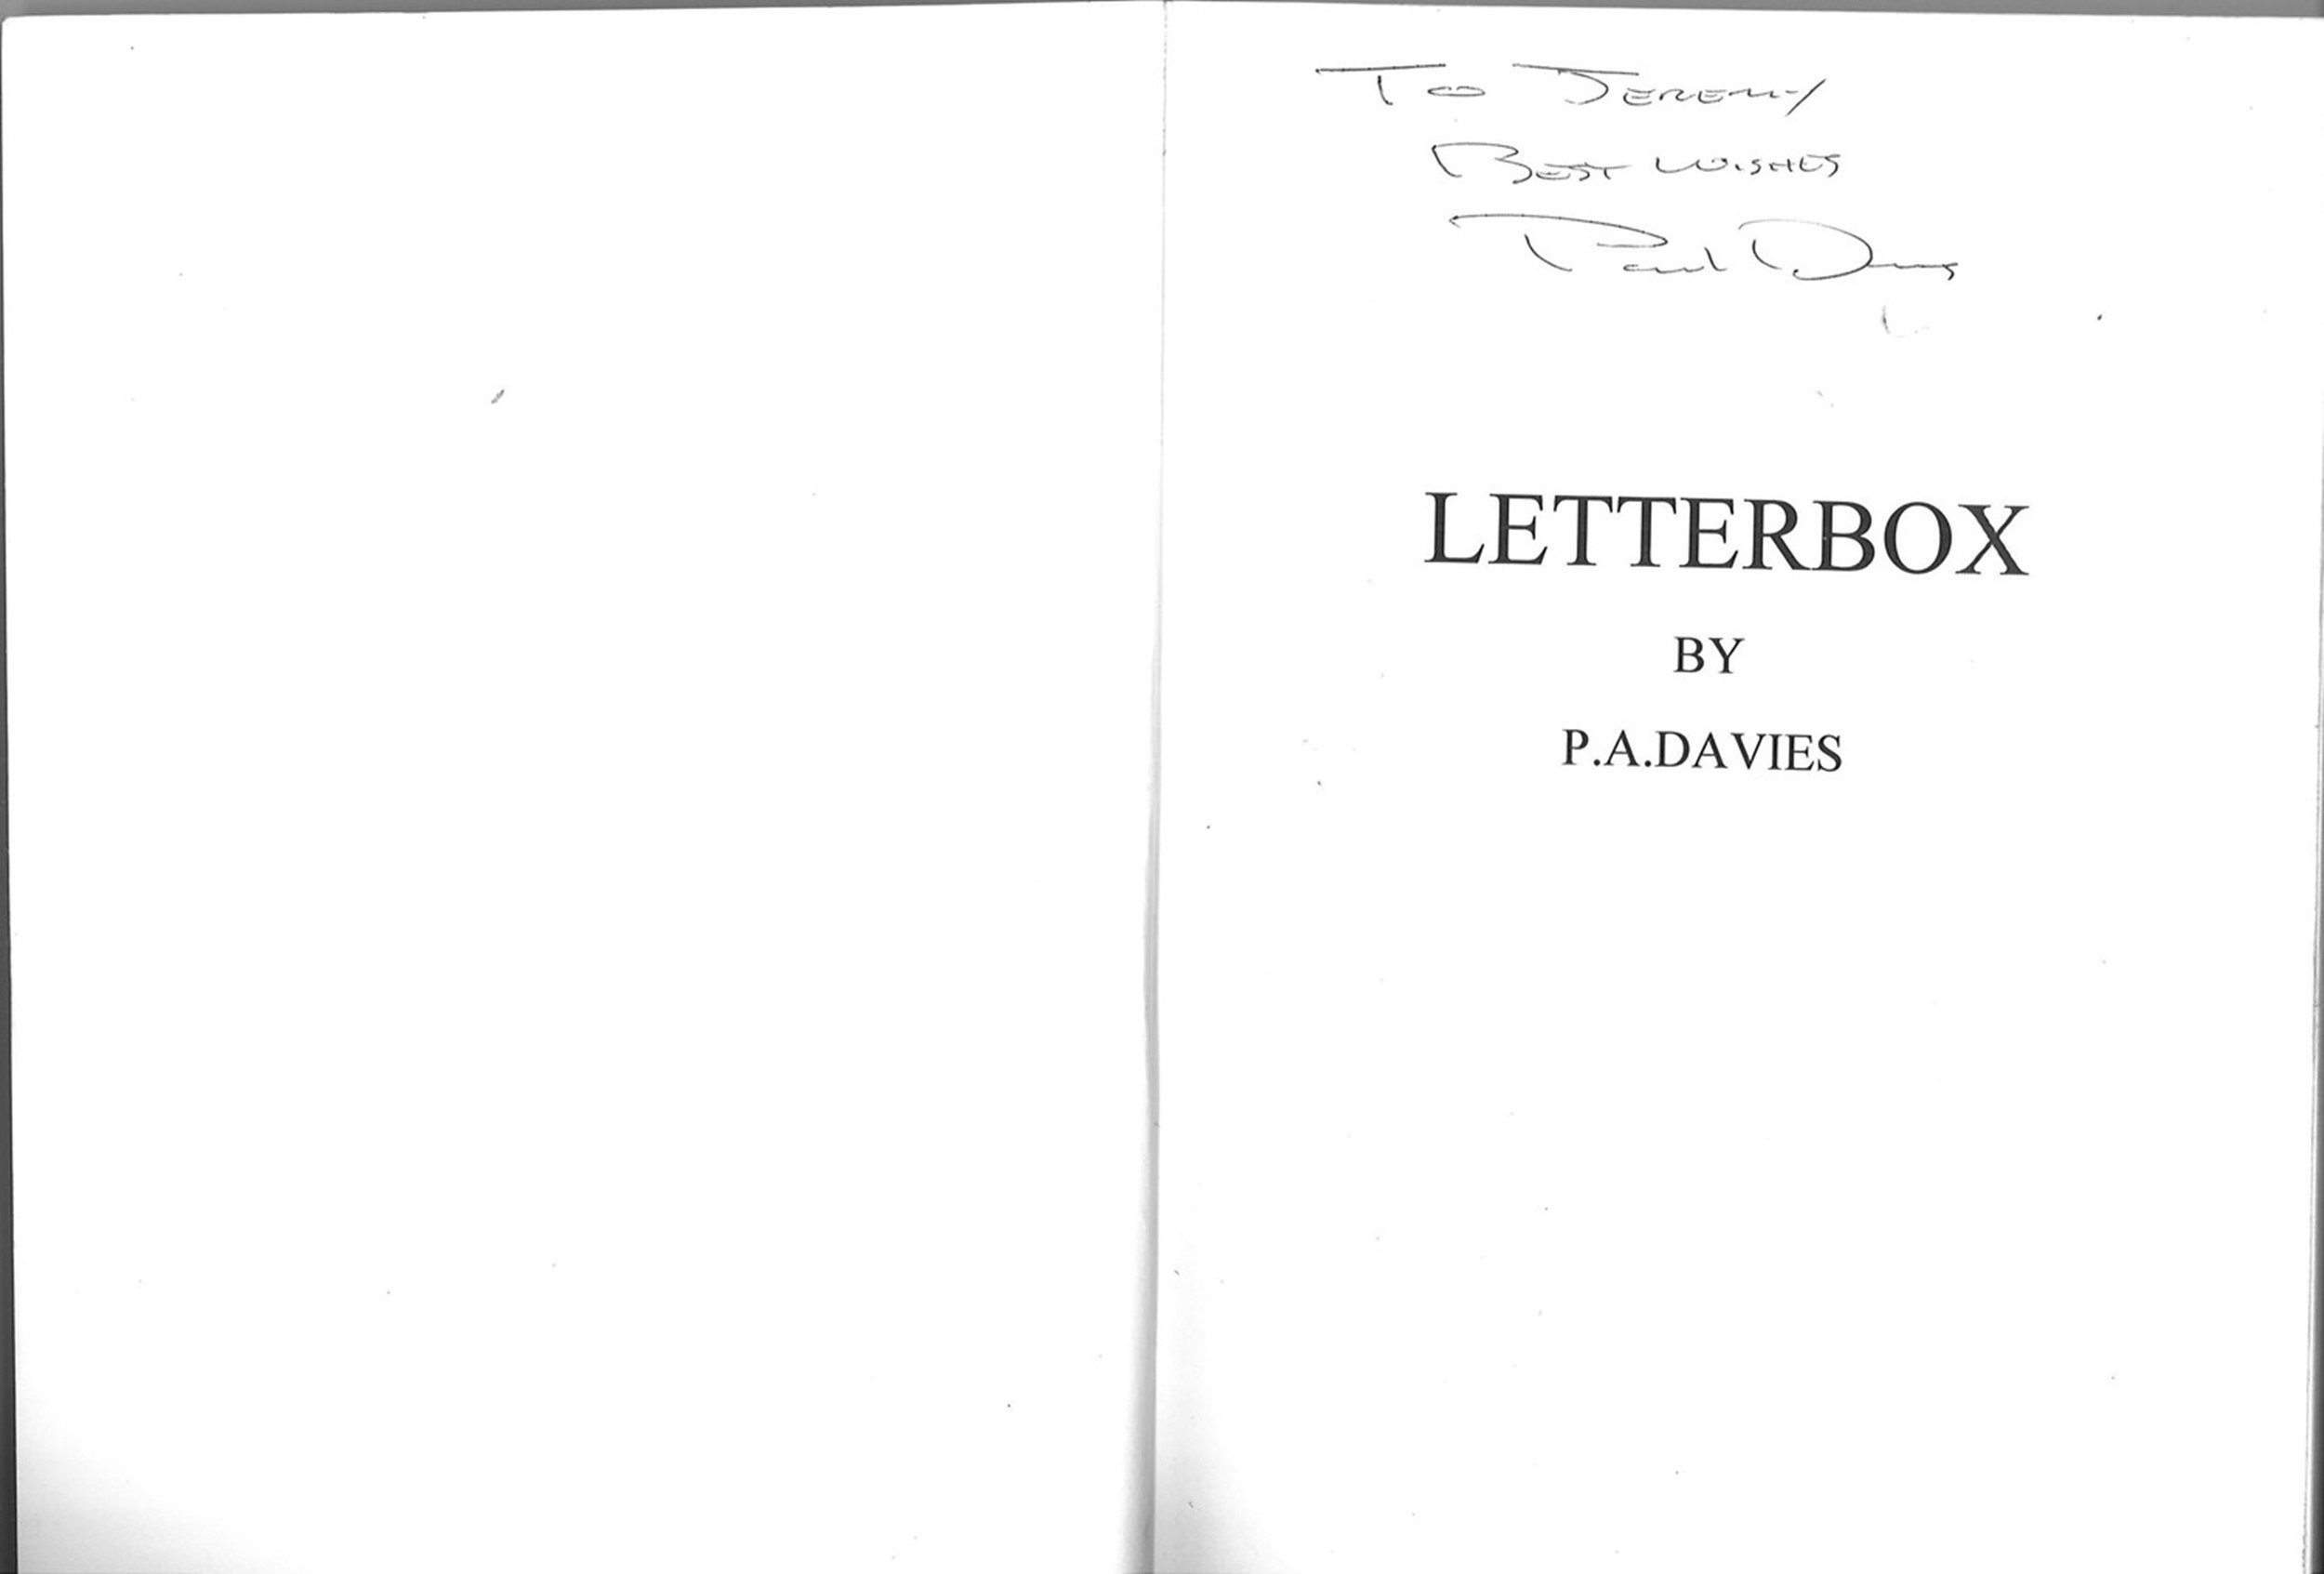 5 signed books. P A Davies signed Letterbox titled book. Sean Weafer signed business coaching - Image 5 of 5